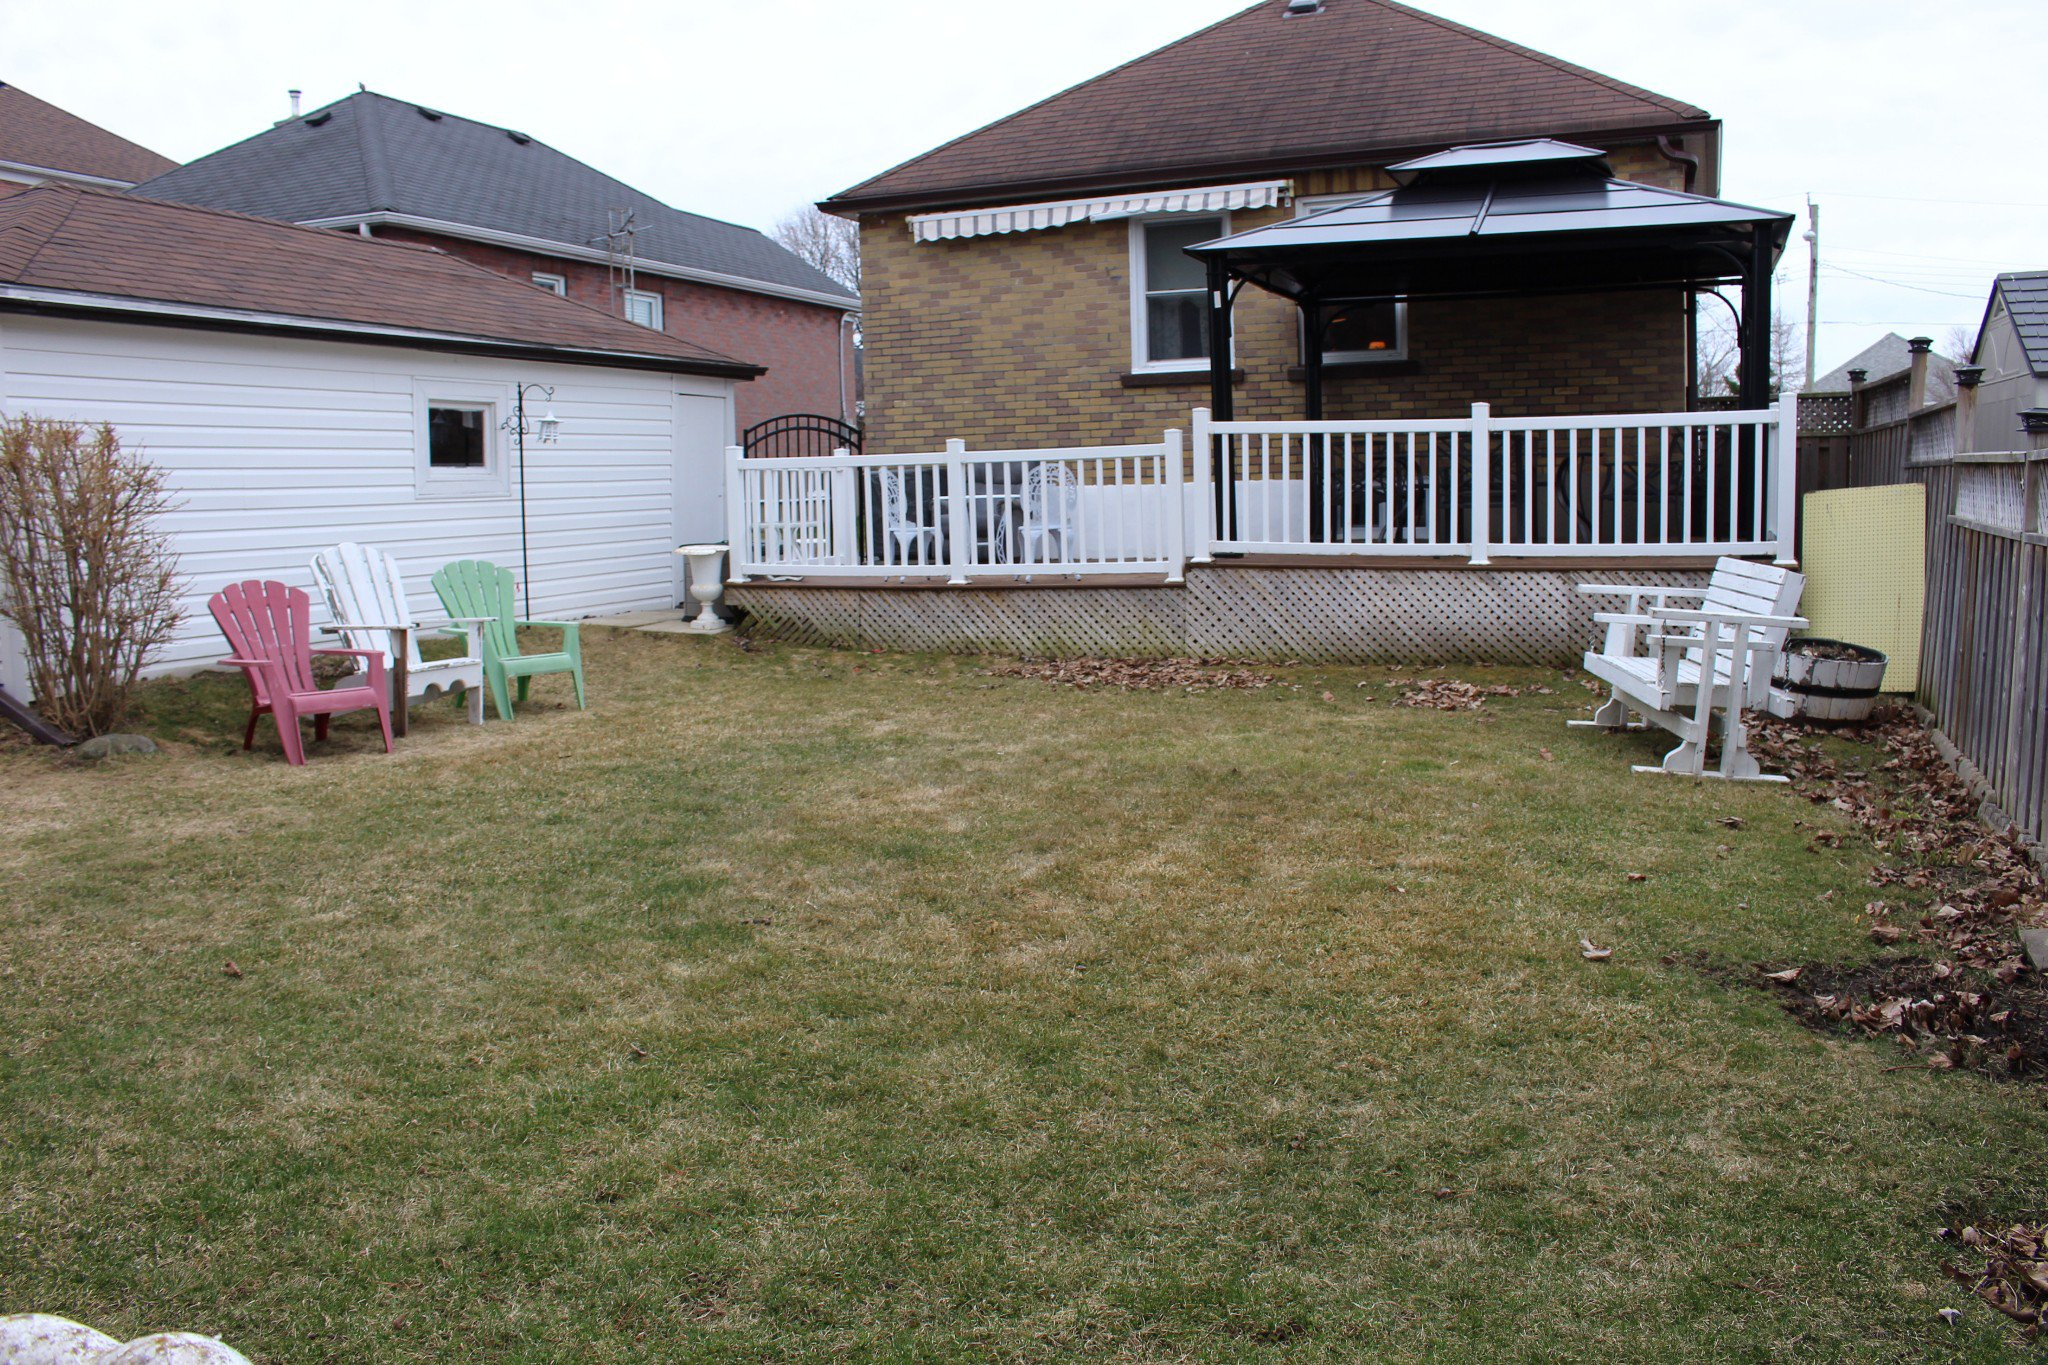 Photo 24: Photos: 12 Clovelly Street in Port Hope: House for sale : MLS®# 187125